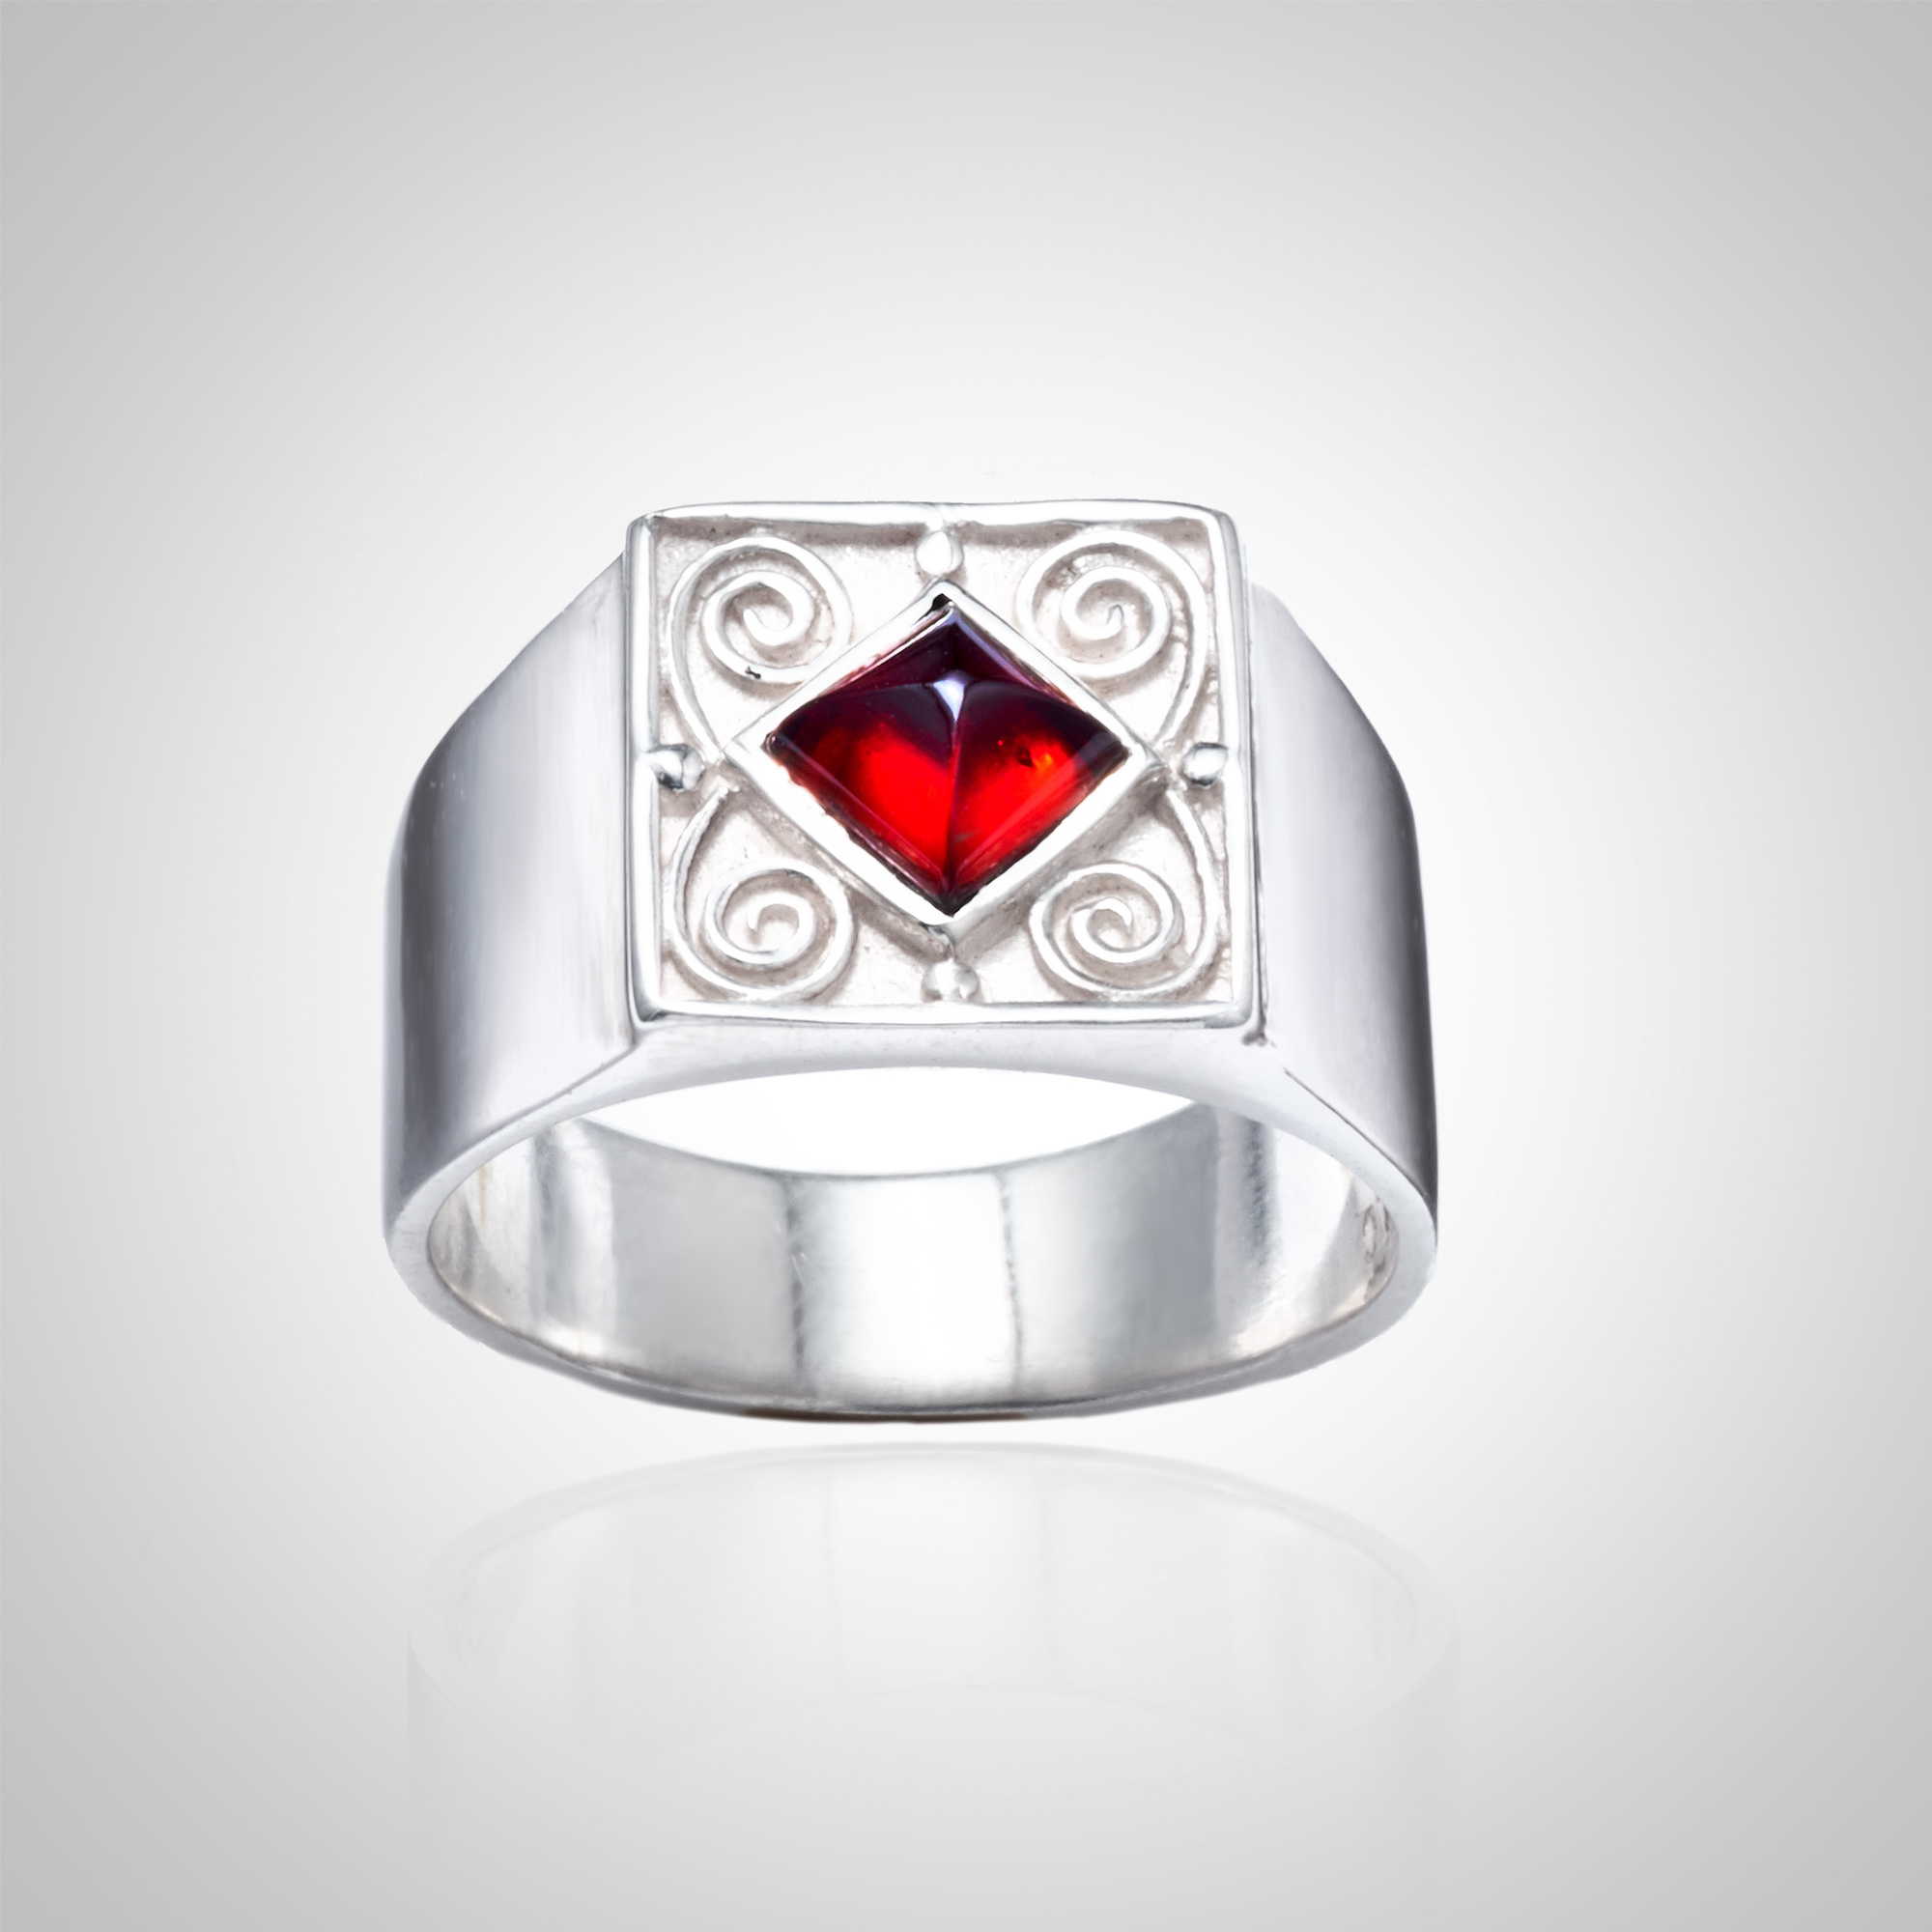 La Tene Filagree Ring